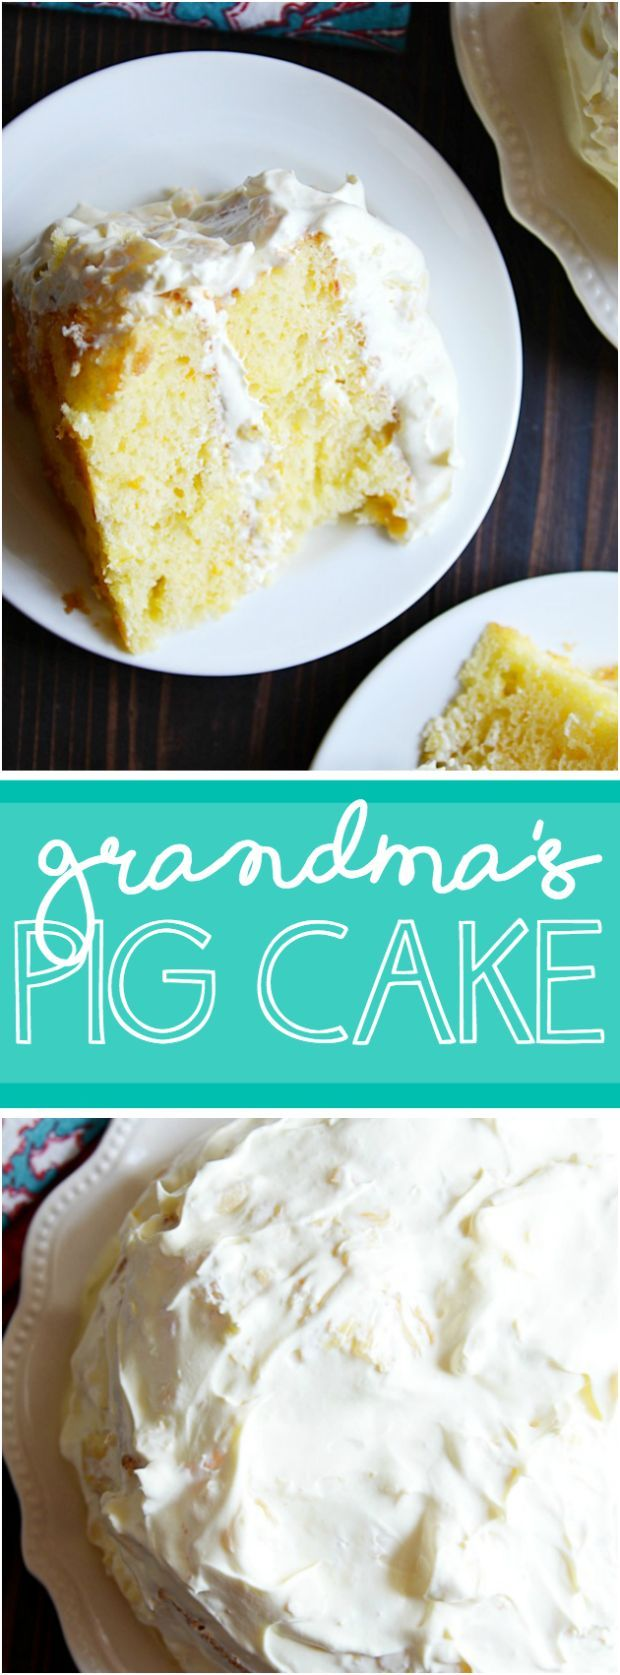 Super moist yellow cake filled with mandarin oranges with a creamy vanilla pineapple whipped topping. It's so good, you'll make a 'pig' of yourself ;)